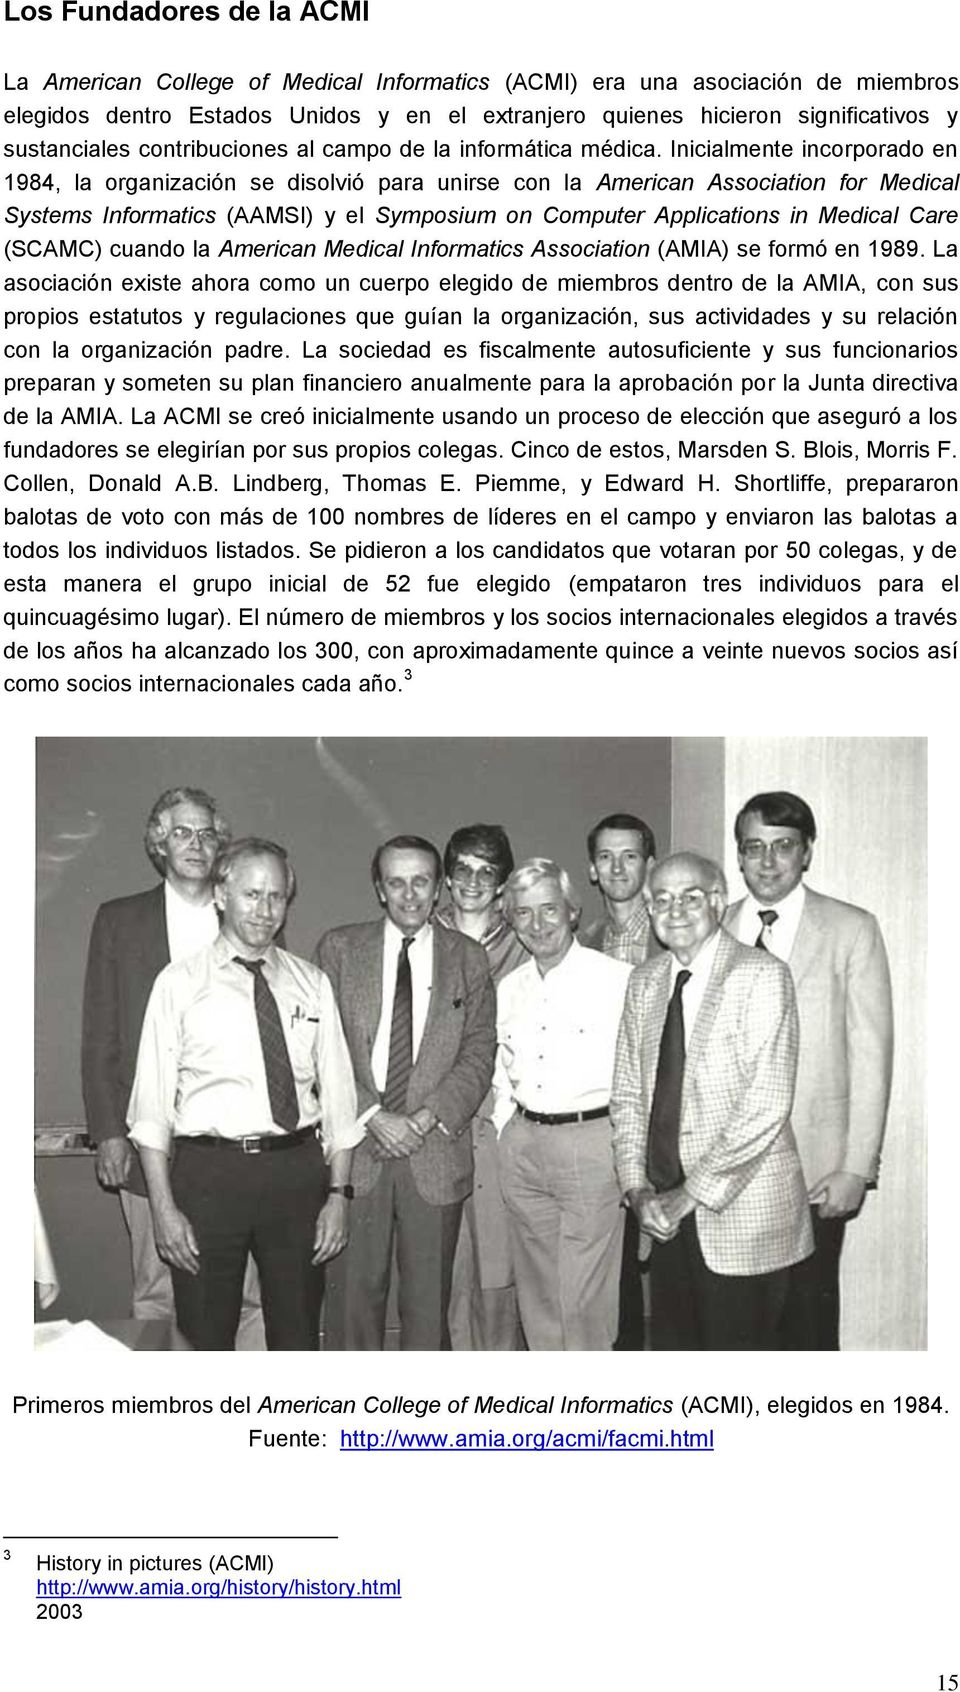 Inicialmente incorporado en 1984, la organización se disolvió para unirse con la American Association for Medical Systems Informatics (AAMSI) y el Symposium on Computer Applications in Medical Care